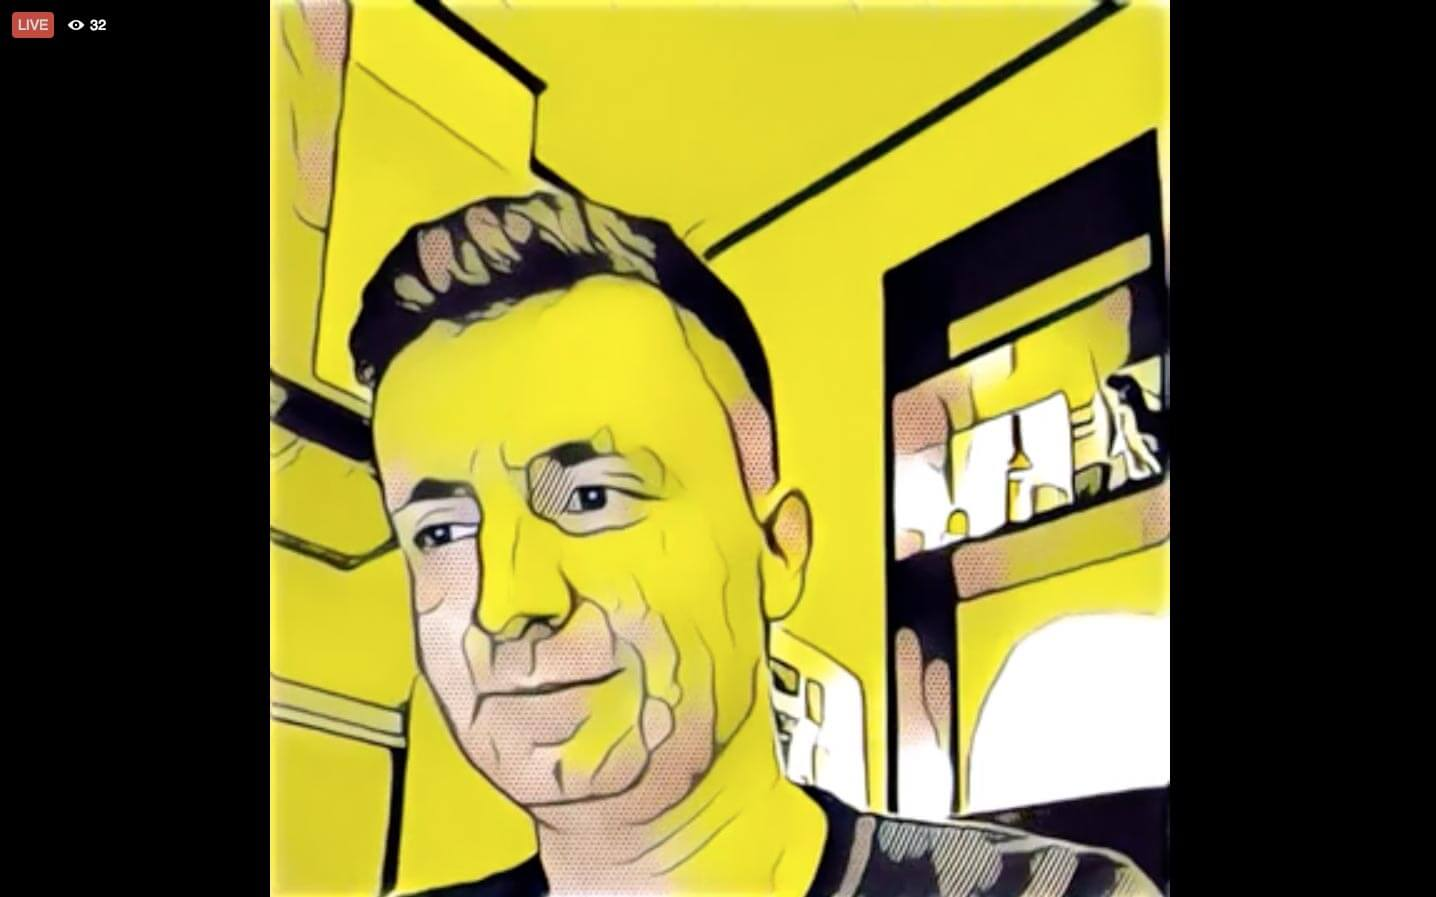 Facebook Blocked Prisma From Their Live Video API